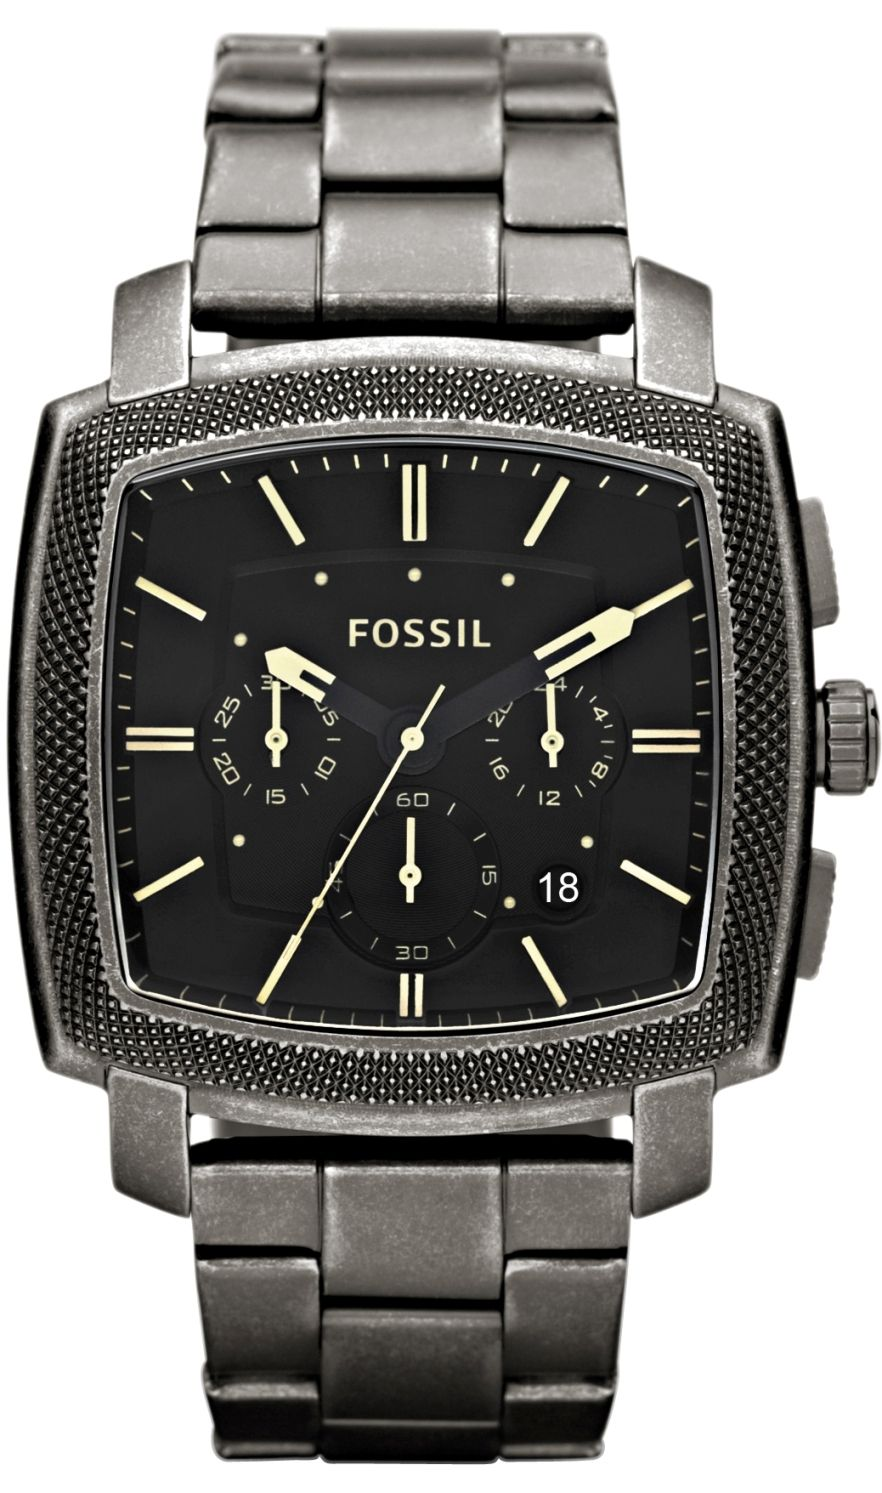 Jr1397StylePinterest Men's FossilwatchMachine Watch Men's FossilwatchMachine Watch FossilwatchMachine Watch Jr1397StylePinterest FossilwatchMachine Men's Men's Watch Jr1397StylePinterest 1FKJT3lc